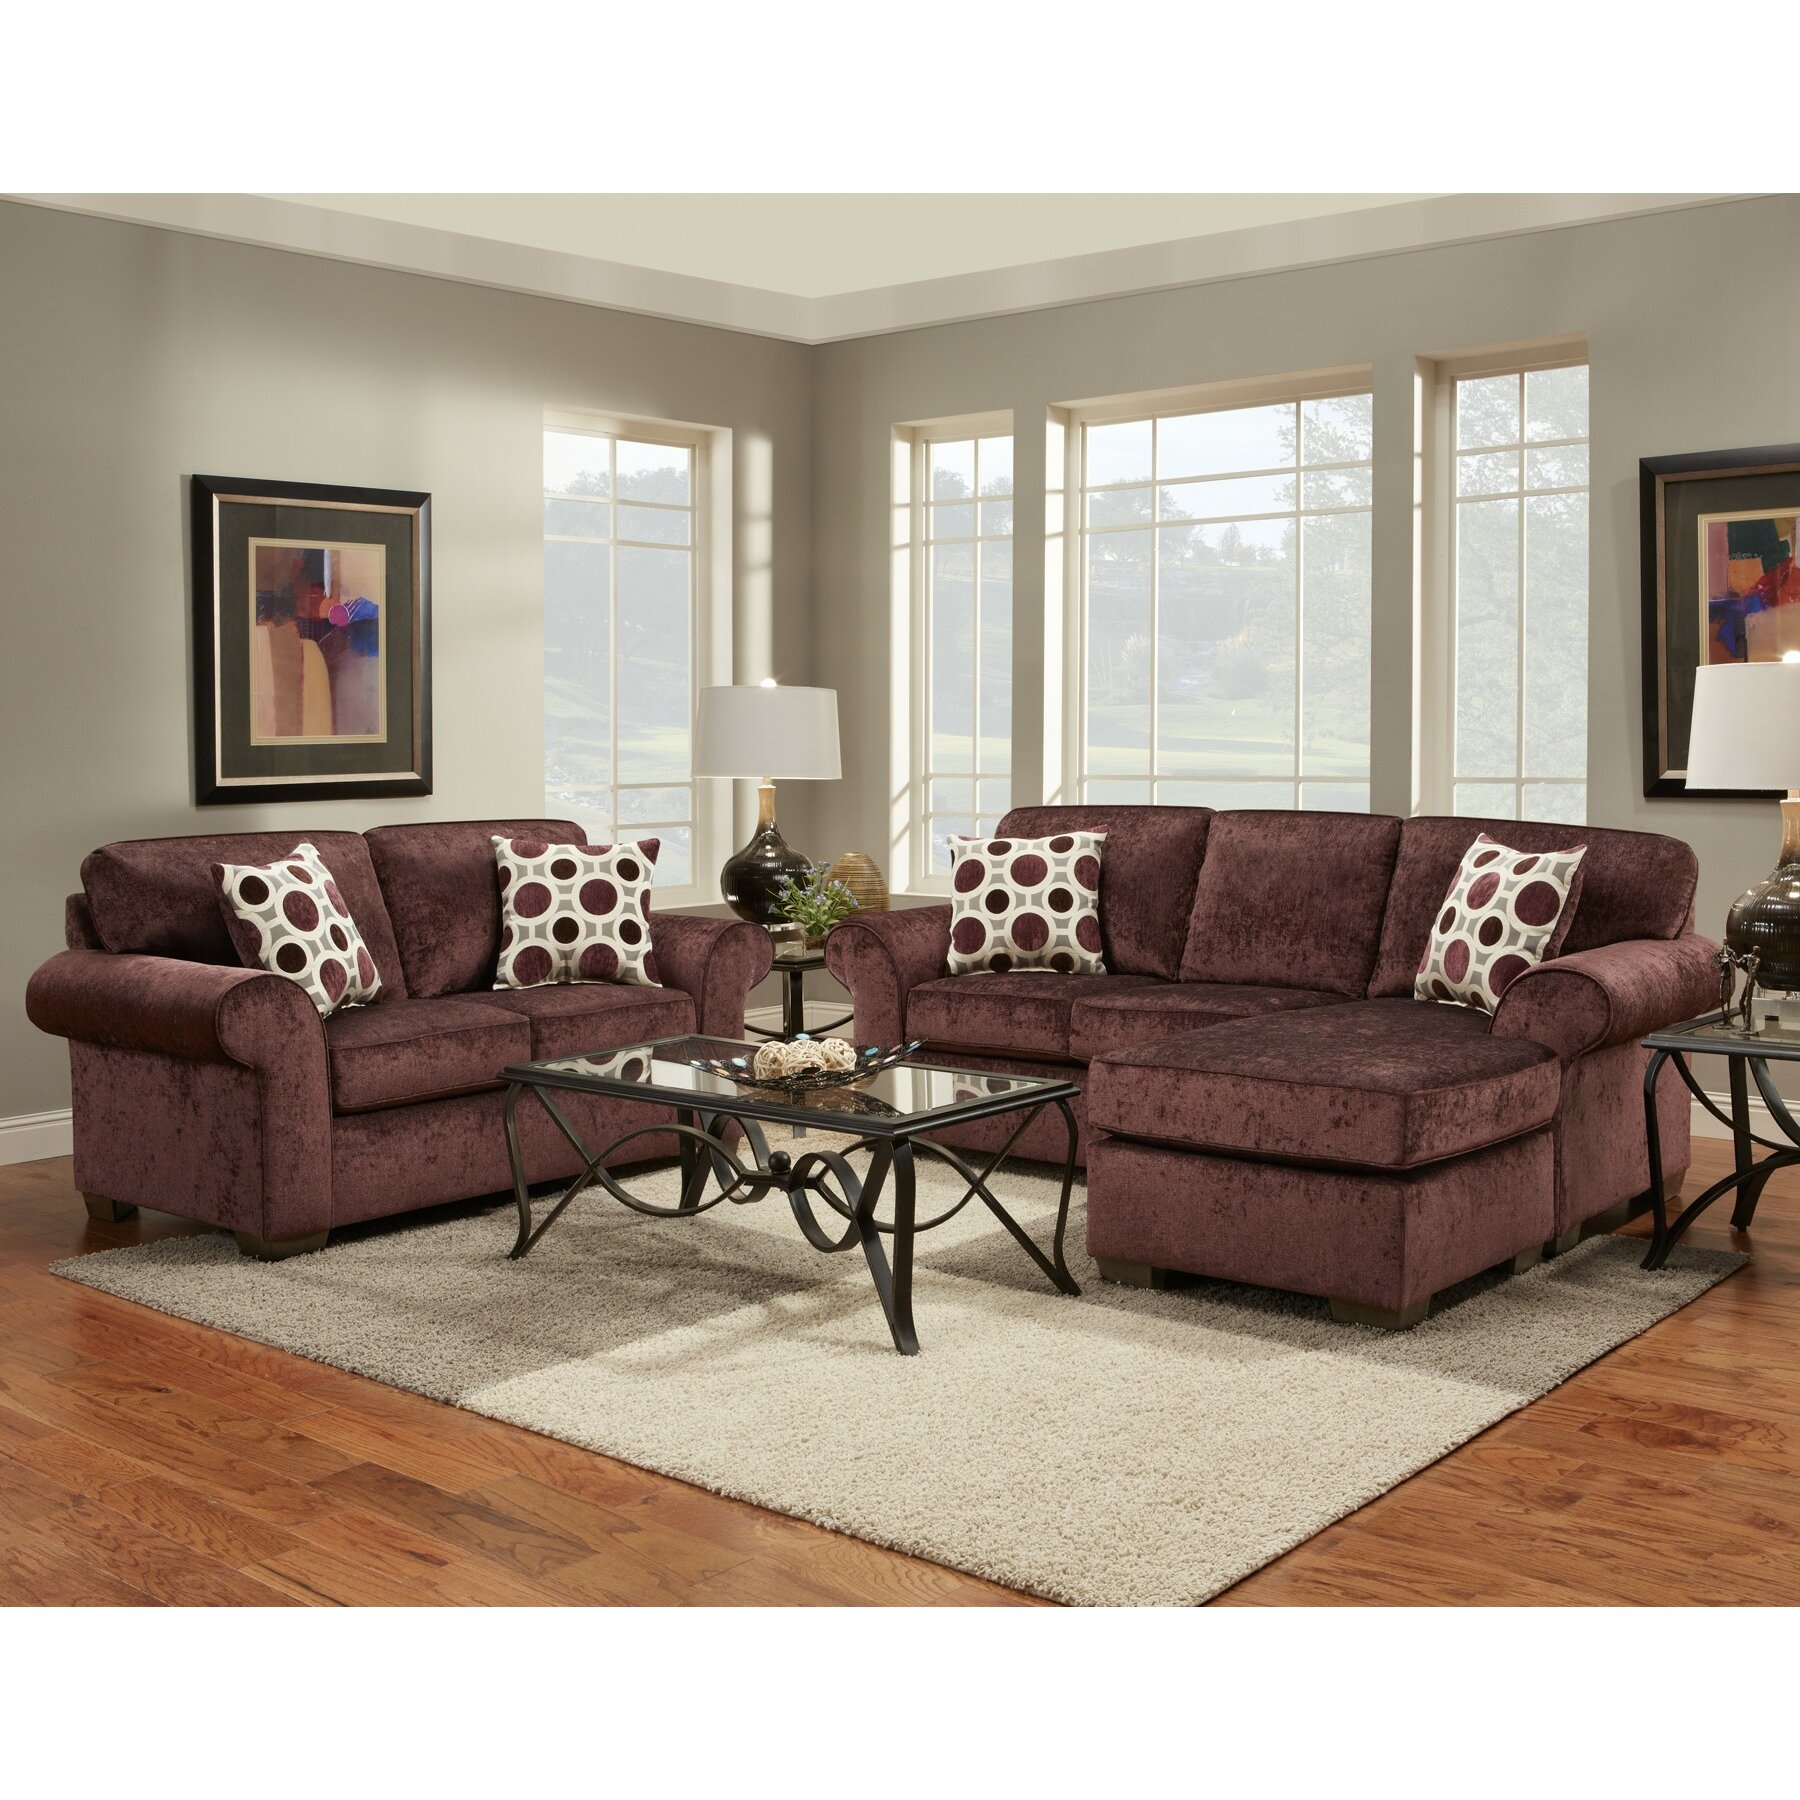 Wildon Home Chloe Living Room Collection